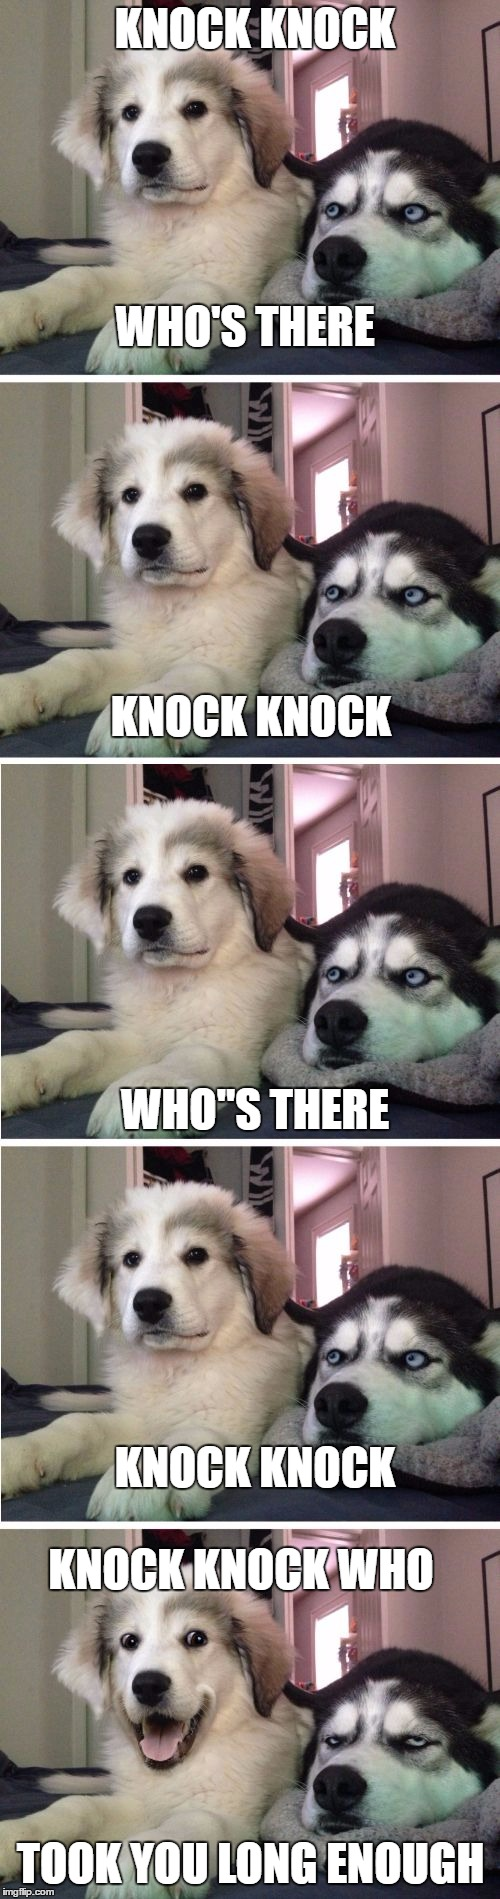 "Knock Knock Dogs | WHO'S THERE KNOCK KNOCK KNOCK KNOCK WHO""S THERE KNOCK KNOCK KNOCK KNOCK WHO TOOK YOU LONG ENOUGH 